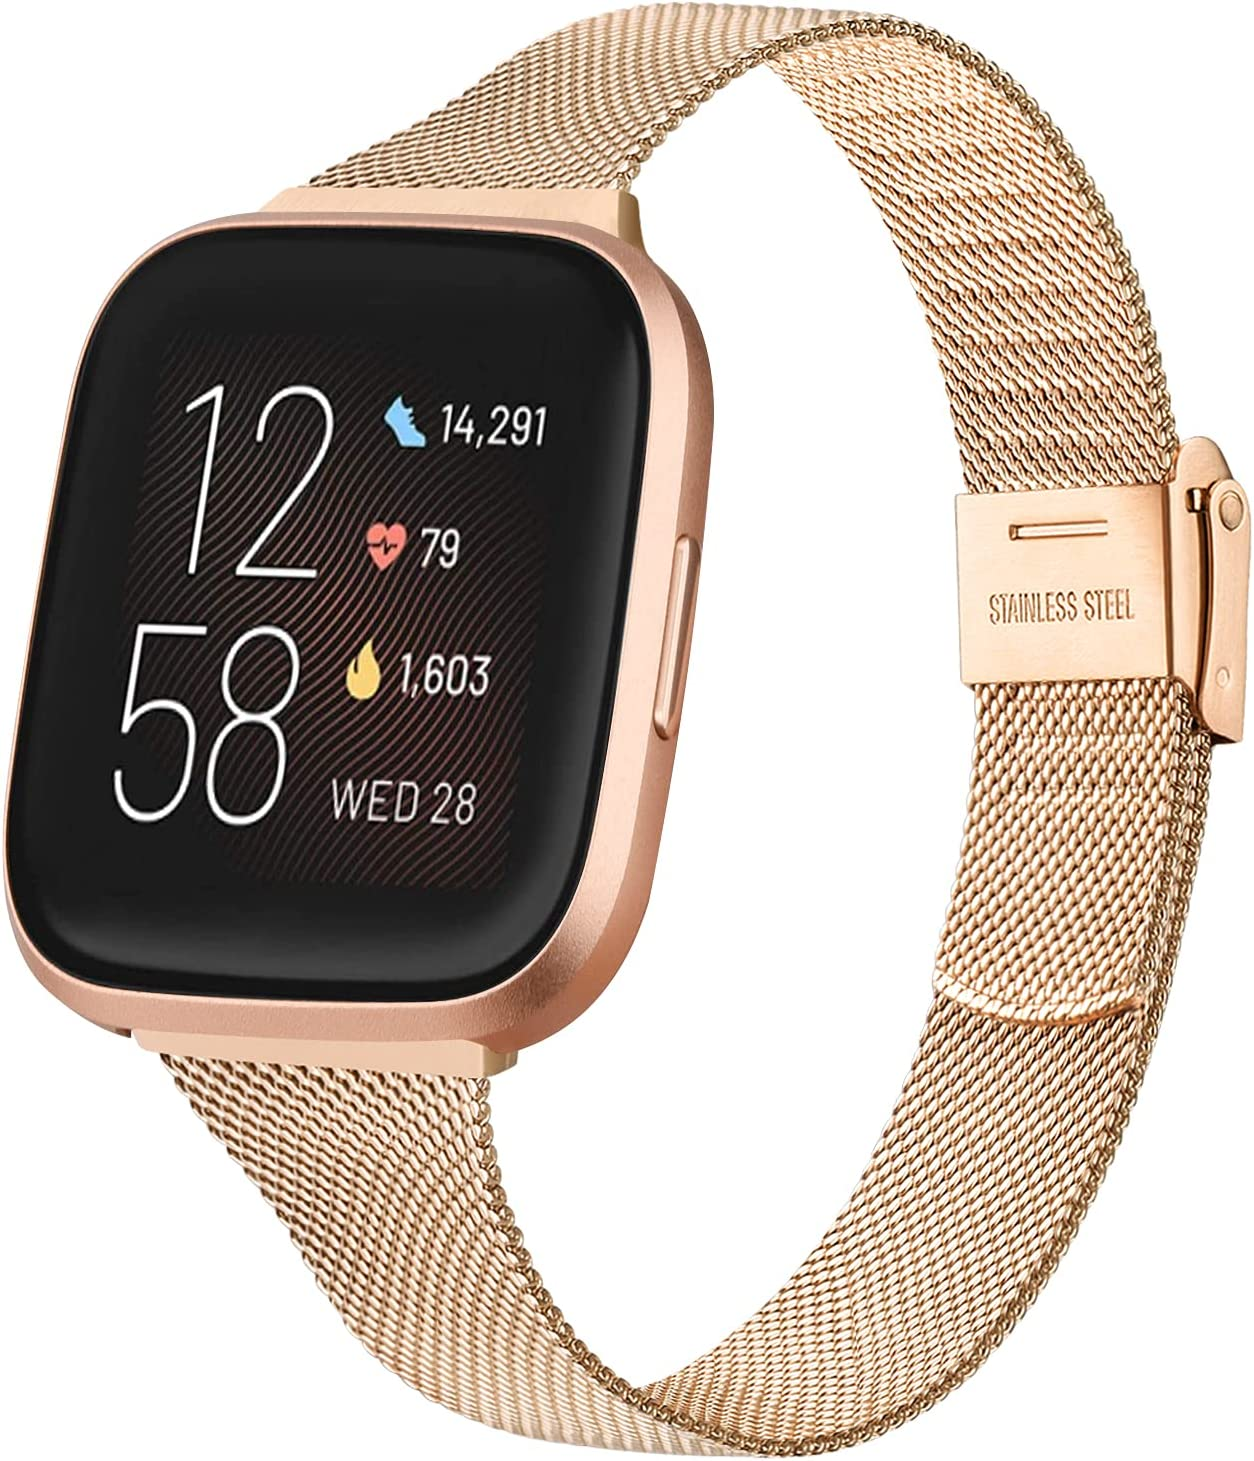 IEOVIEE Metal Slim Band Compatible with Fitbit Versa 2 / Fitbit Versa / Fitbit Versa SE / Fitbit Versa Lite Band, Stainless Steel Narrow Replacement Wristband for Woman (Rose Gold)